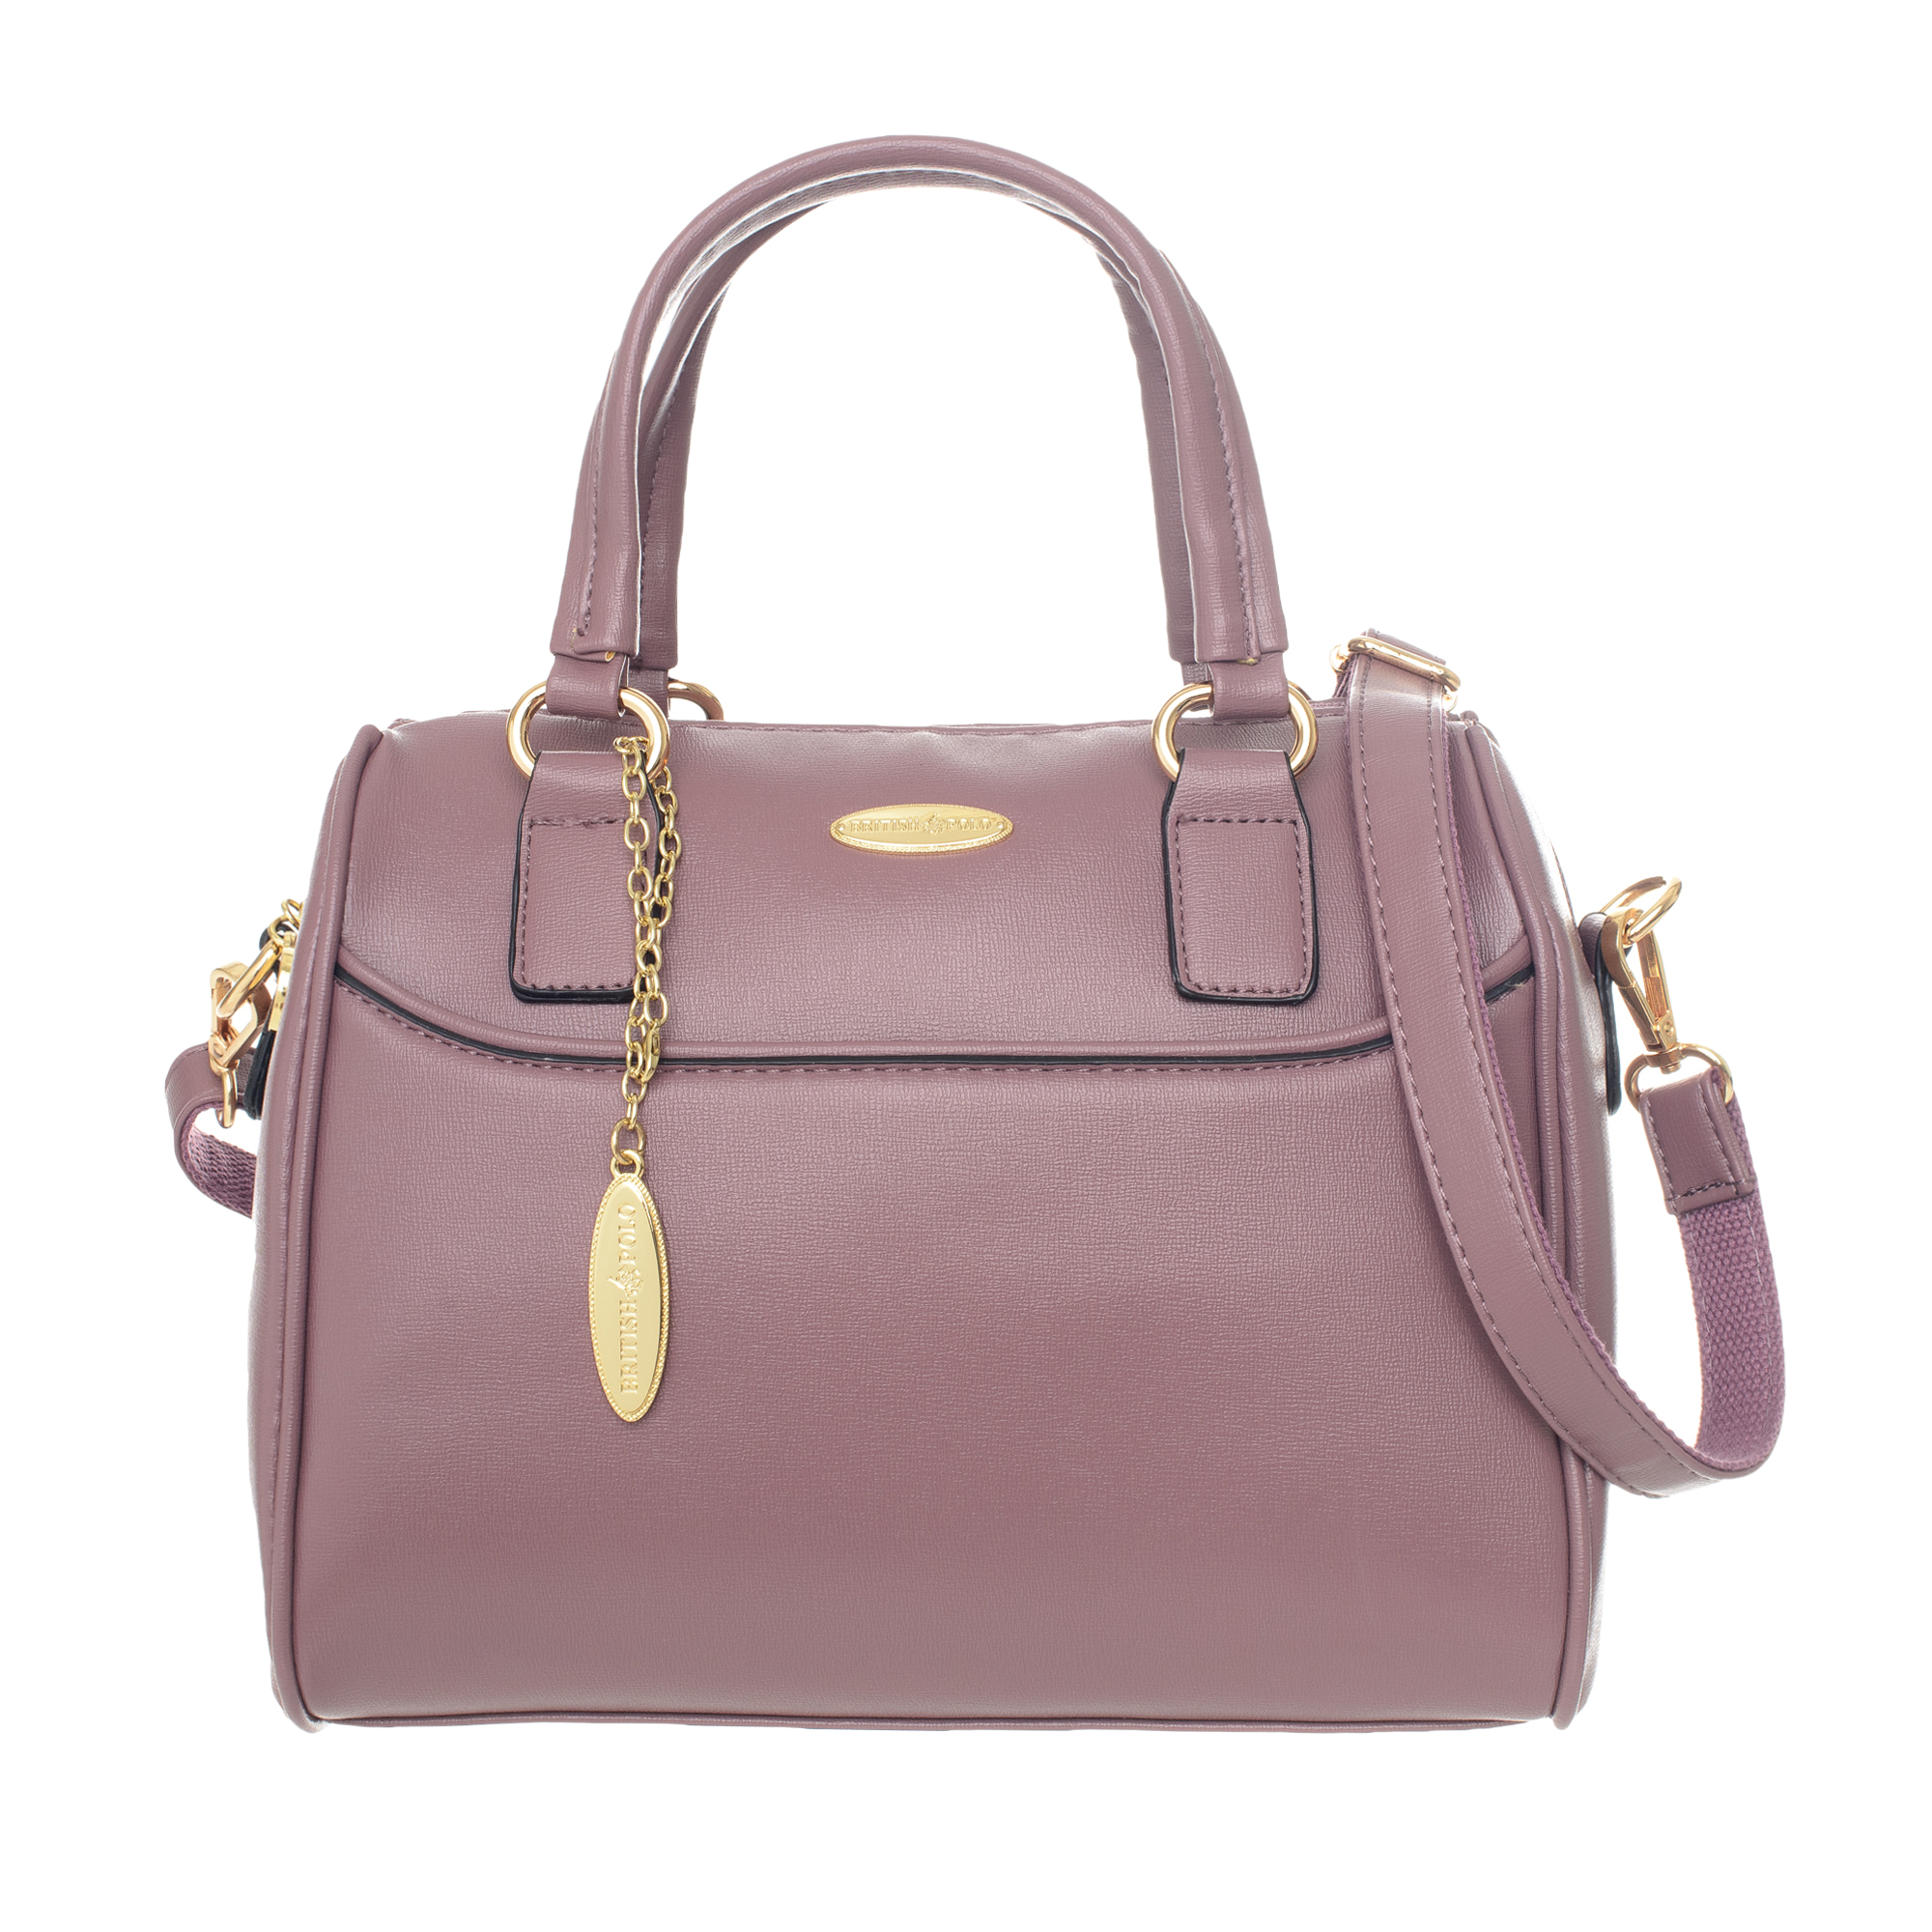 British Polo Satchel Bag